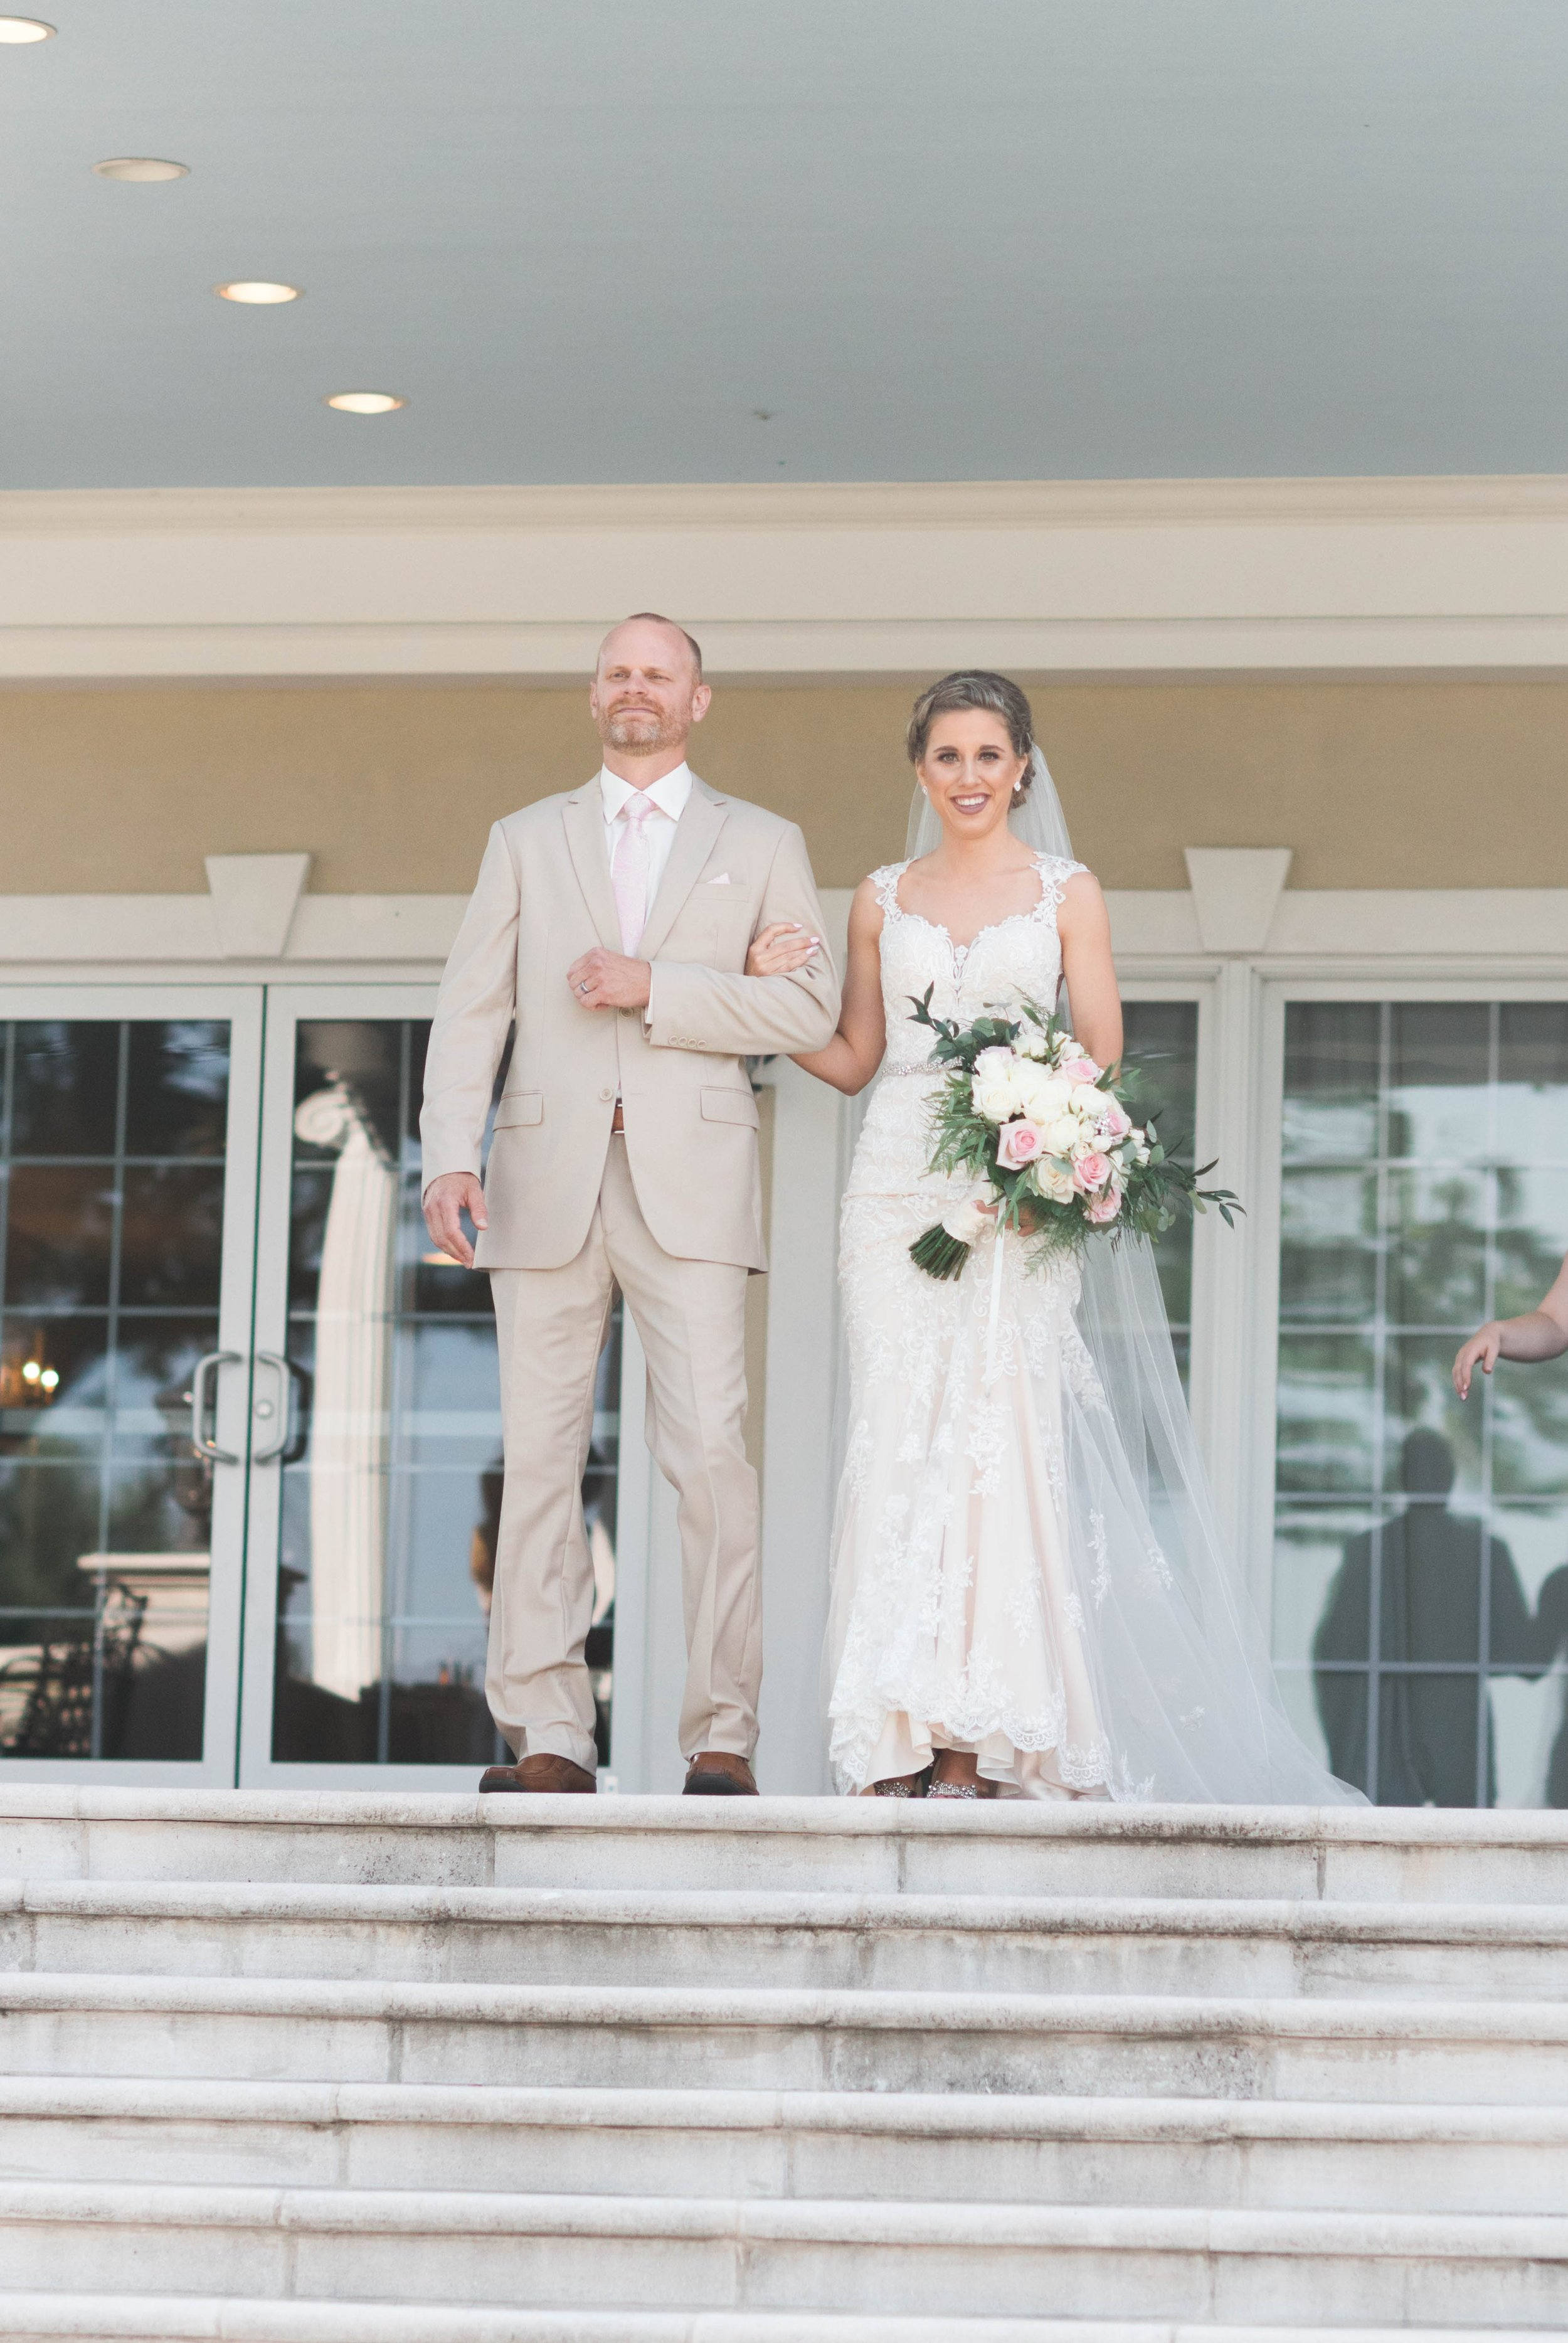 BedfordColumns_EntwinedEvents_Lynchburgwedding_VIrginiaweddingphotographer_ALlisonNIck 36.jpg